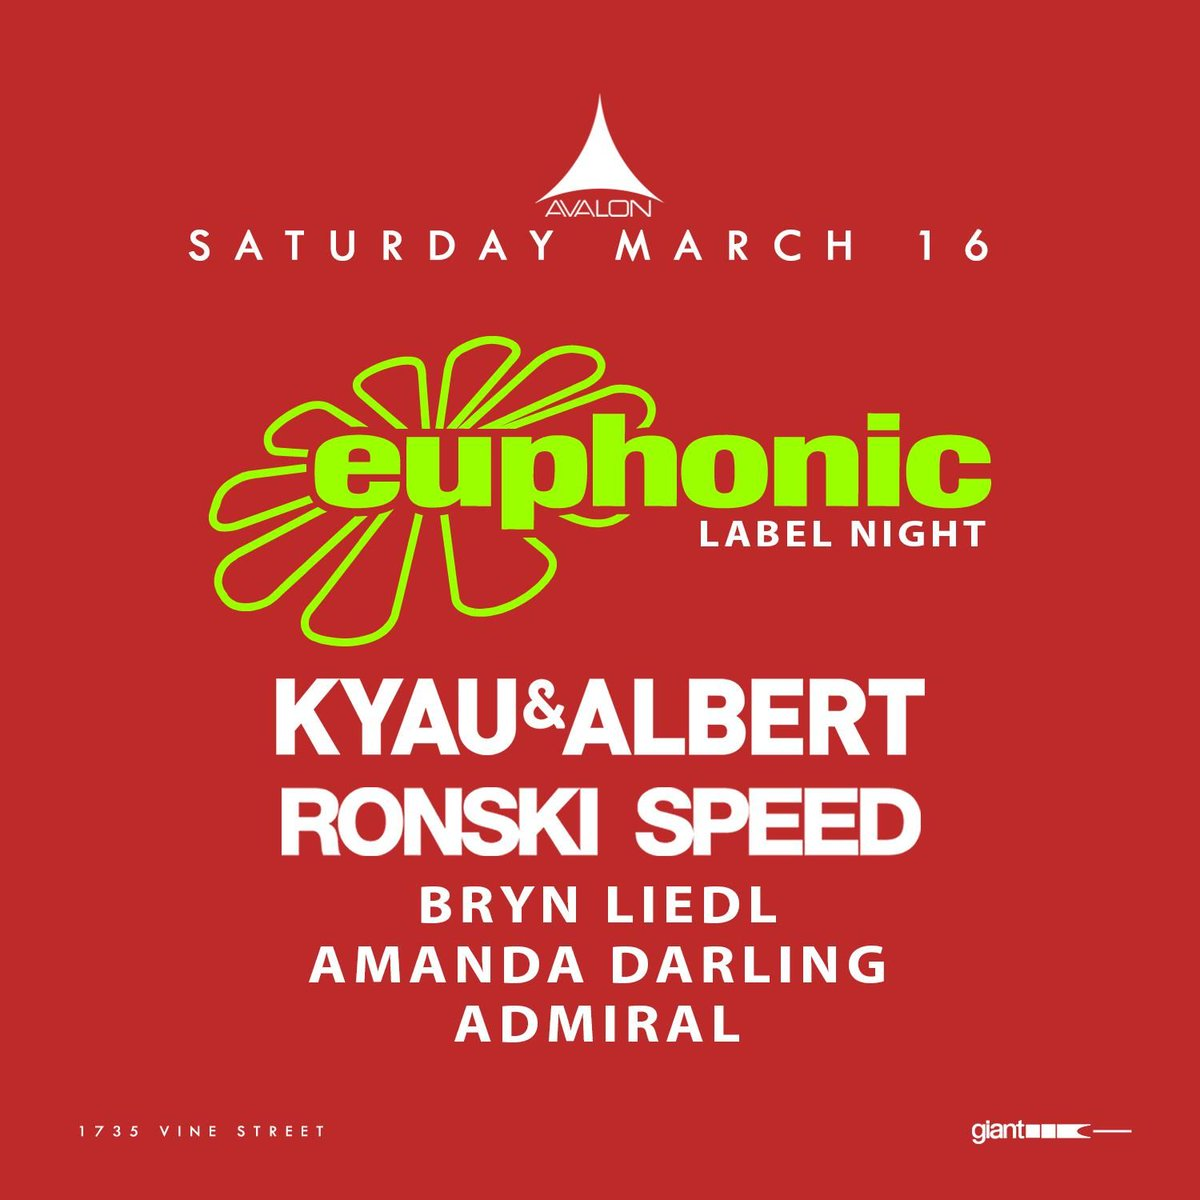 🏆 Just announced! 🏆 3/16 Is it Spring yet? Because we have one of the best imprints in trance @EuphonicRec providing the sounds of @KyauAndAlbert and @ronskispeed! Tickets: http://vor.us/a033c